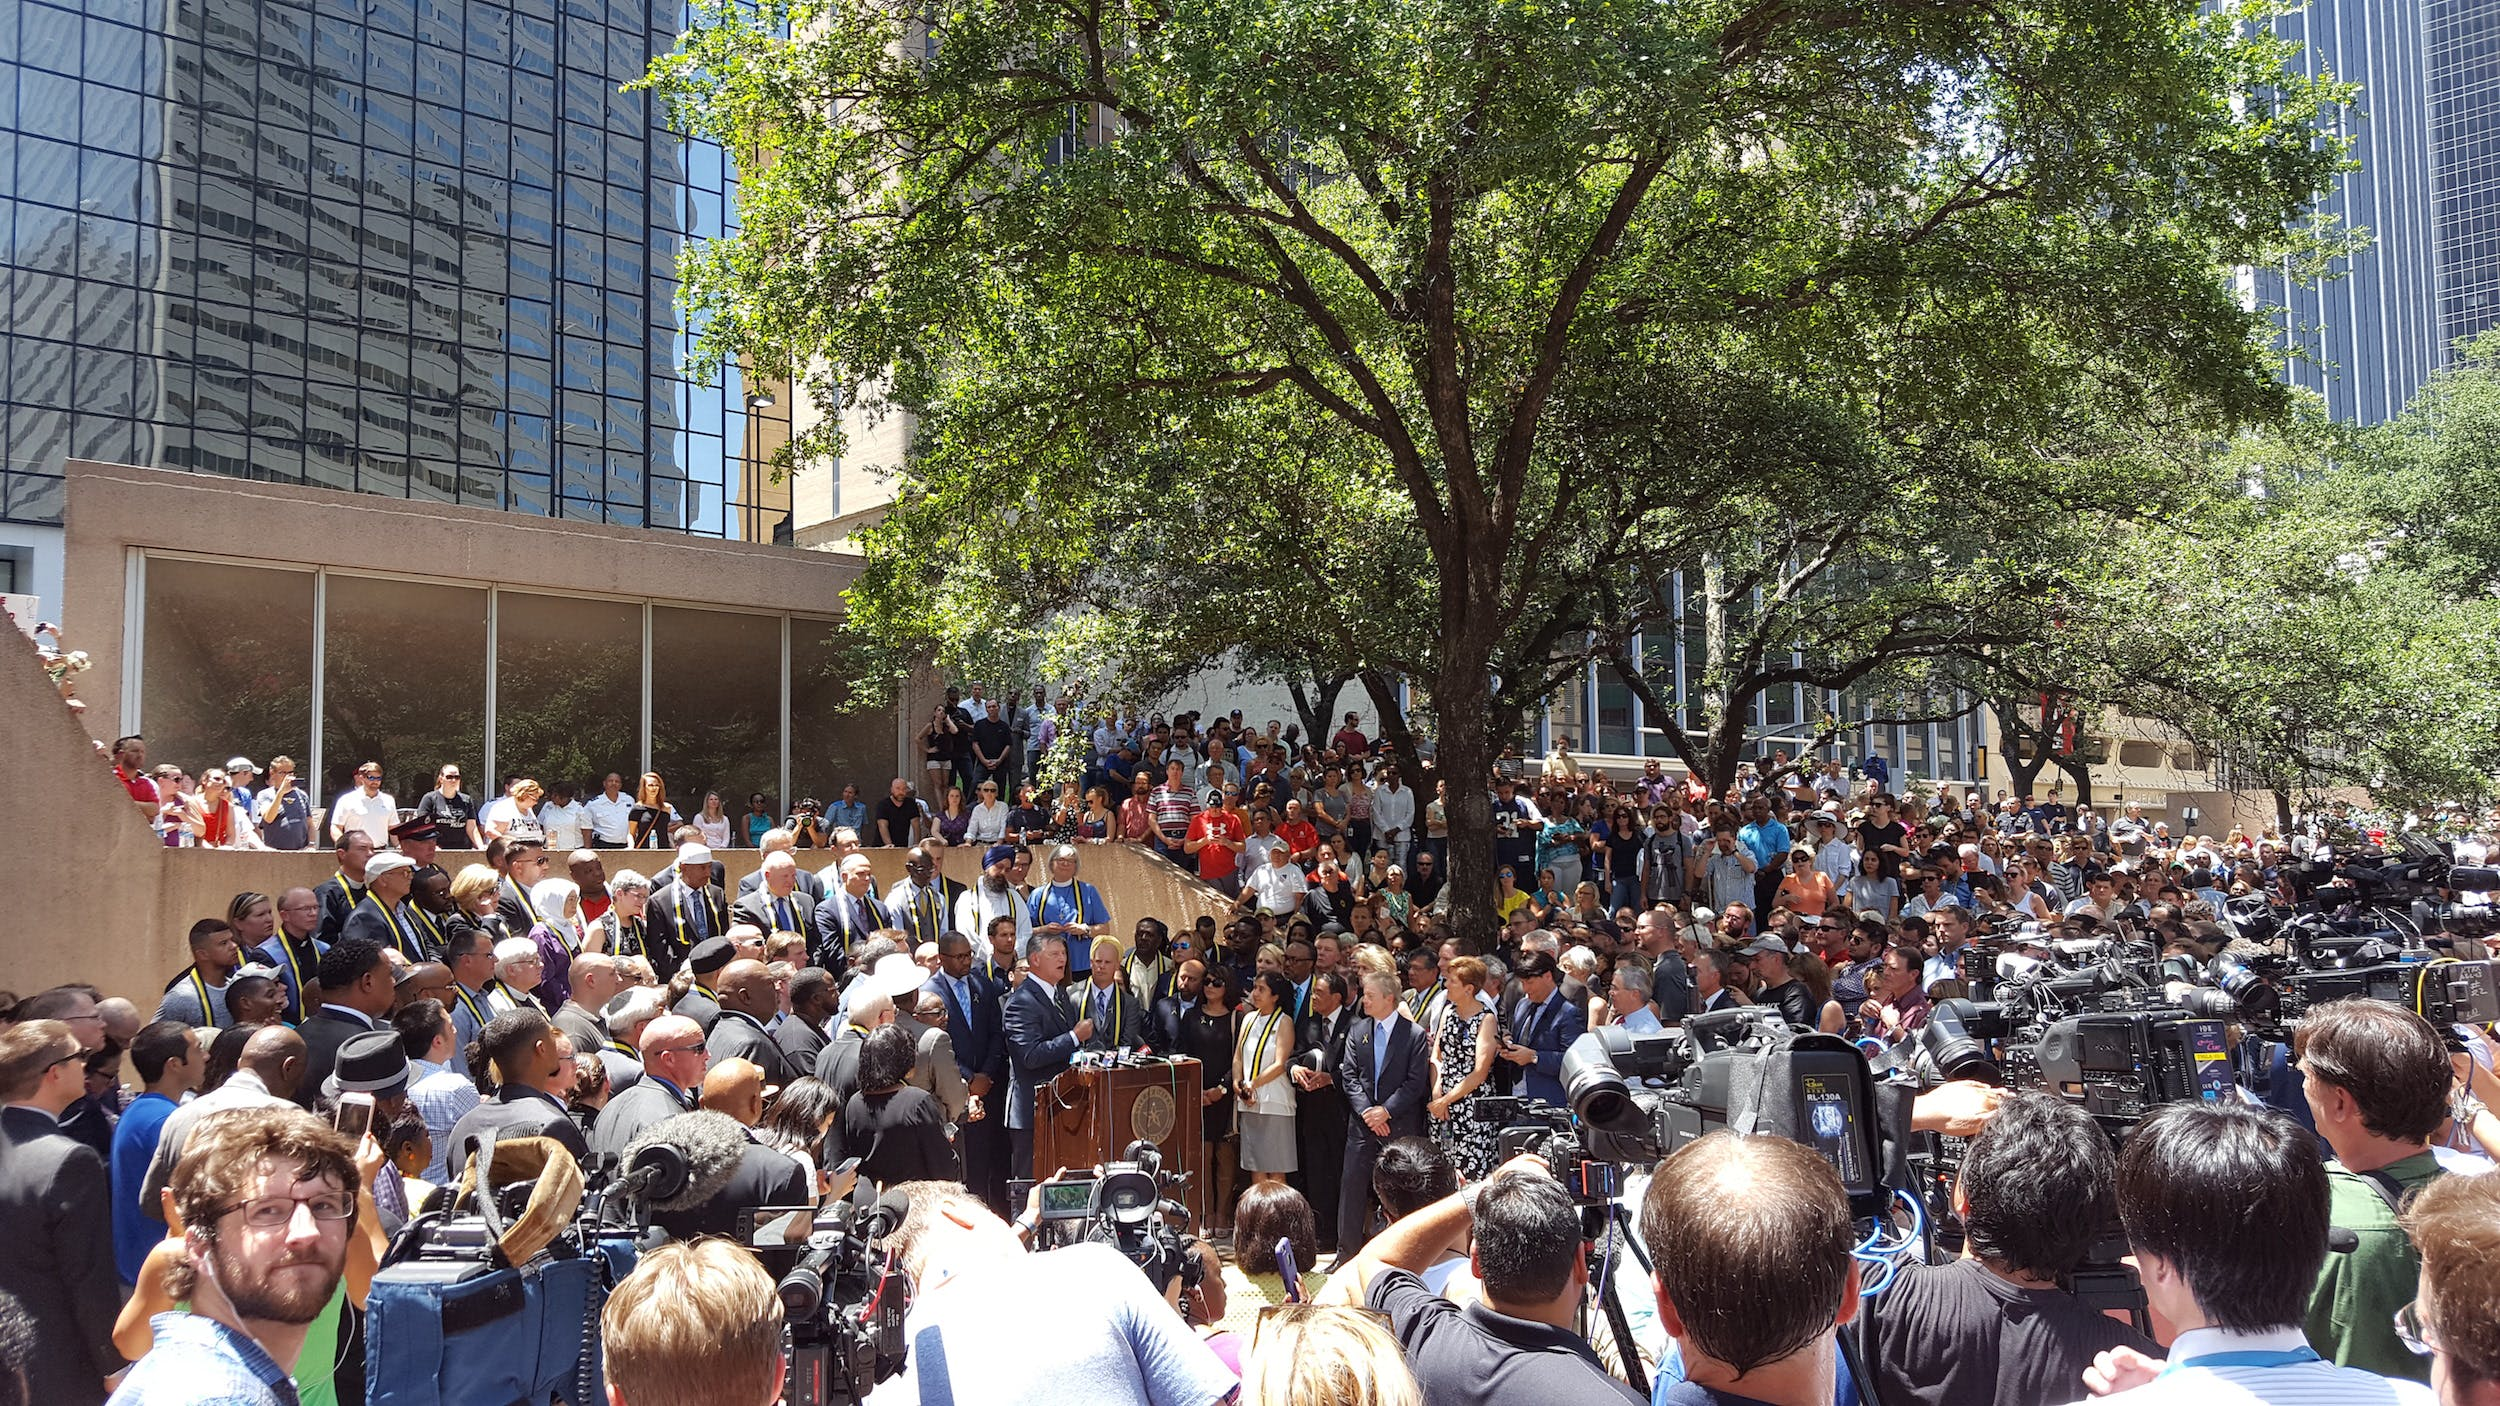 Dallas Mayor Mike Rawlings joined by faith leaders of the Dallas community at Thanks-Giving Square on July 8, 2016.